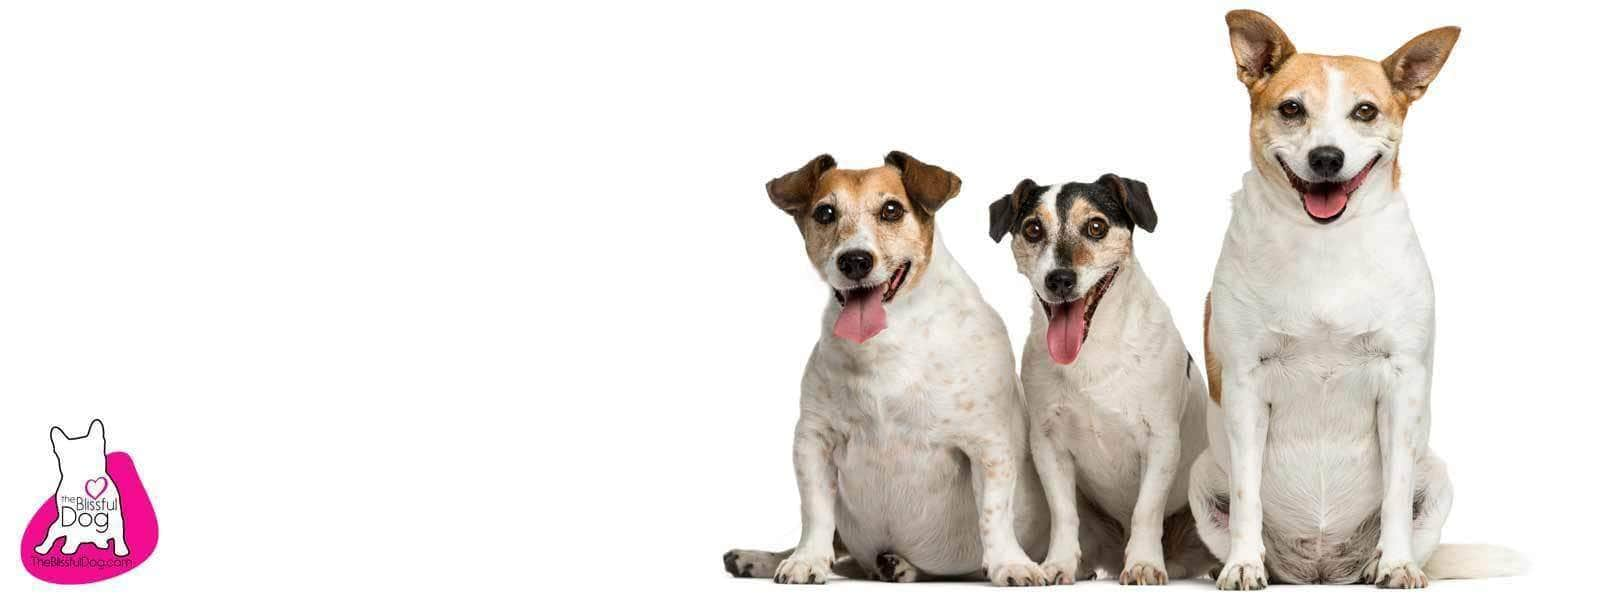 Jack Russell? Parson Russell? Russell Terrier?